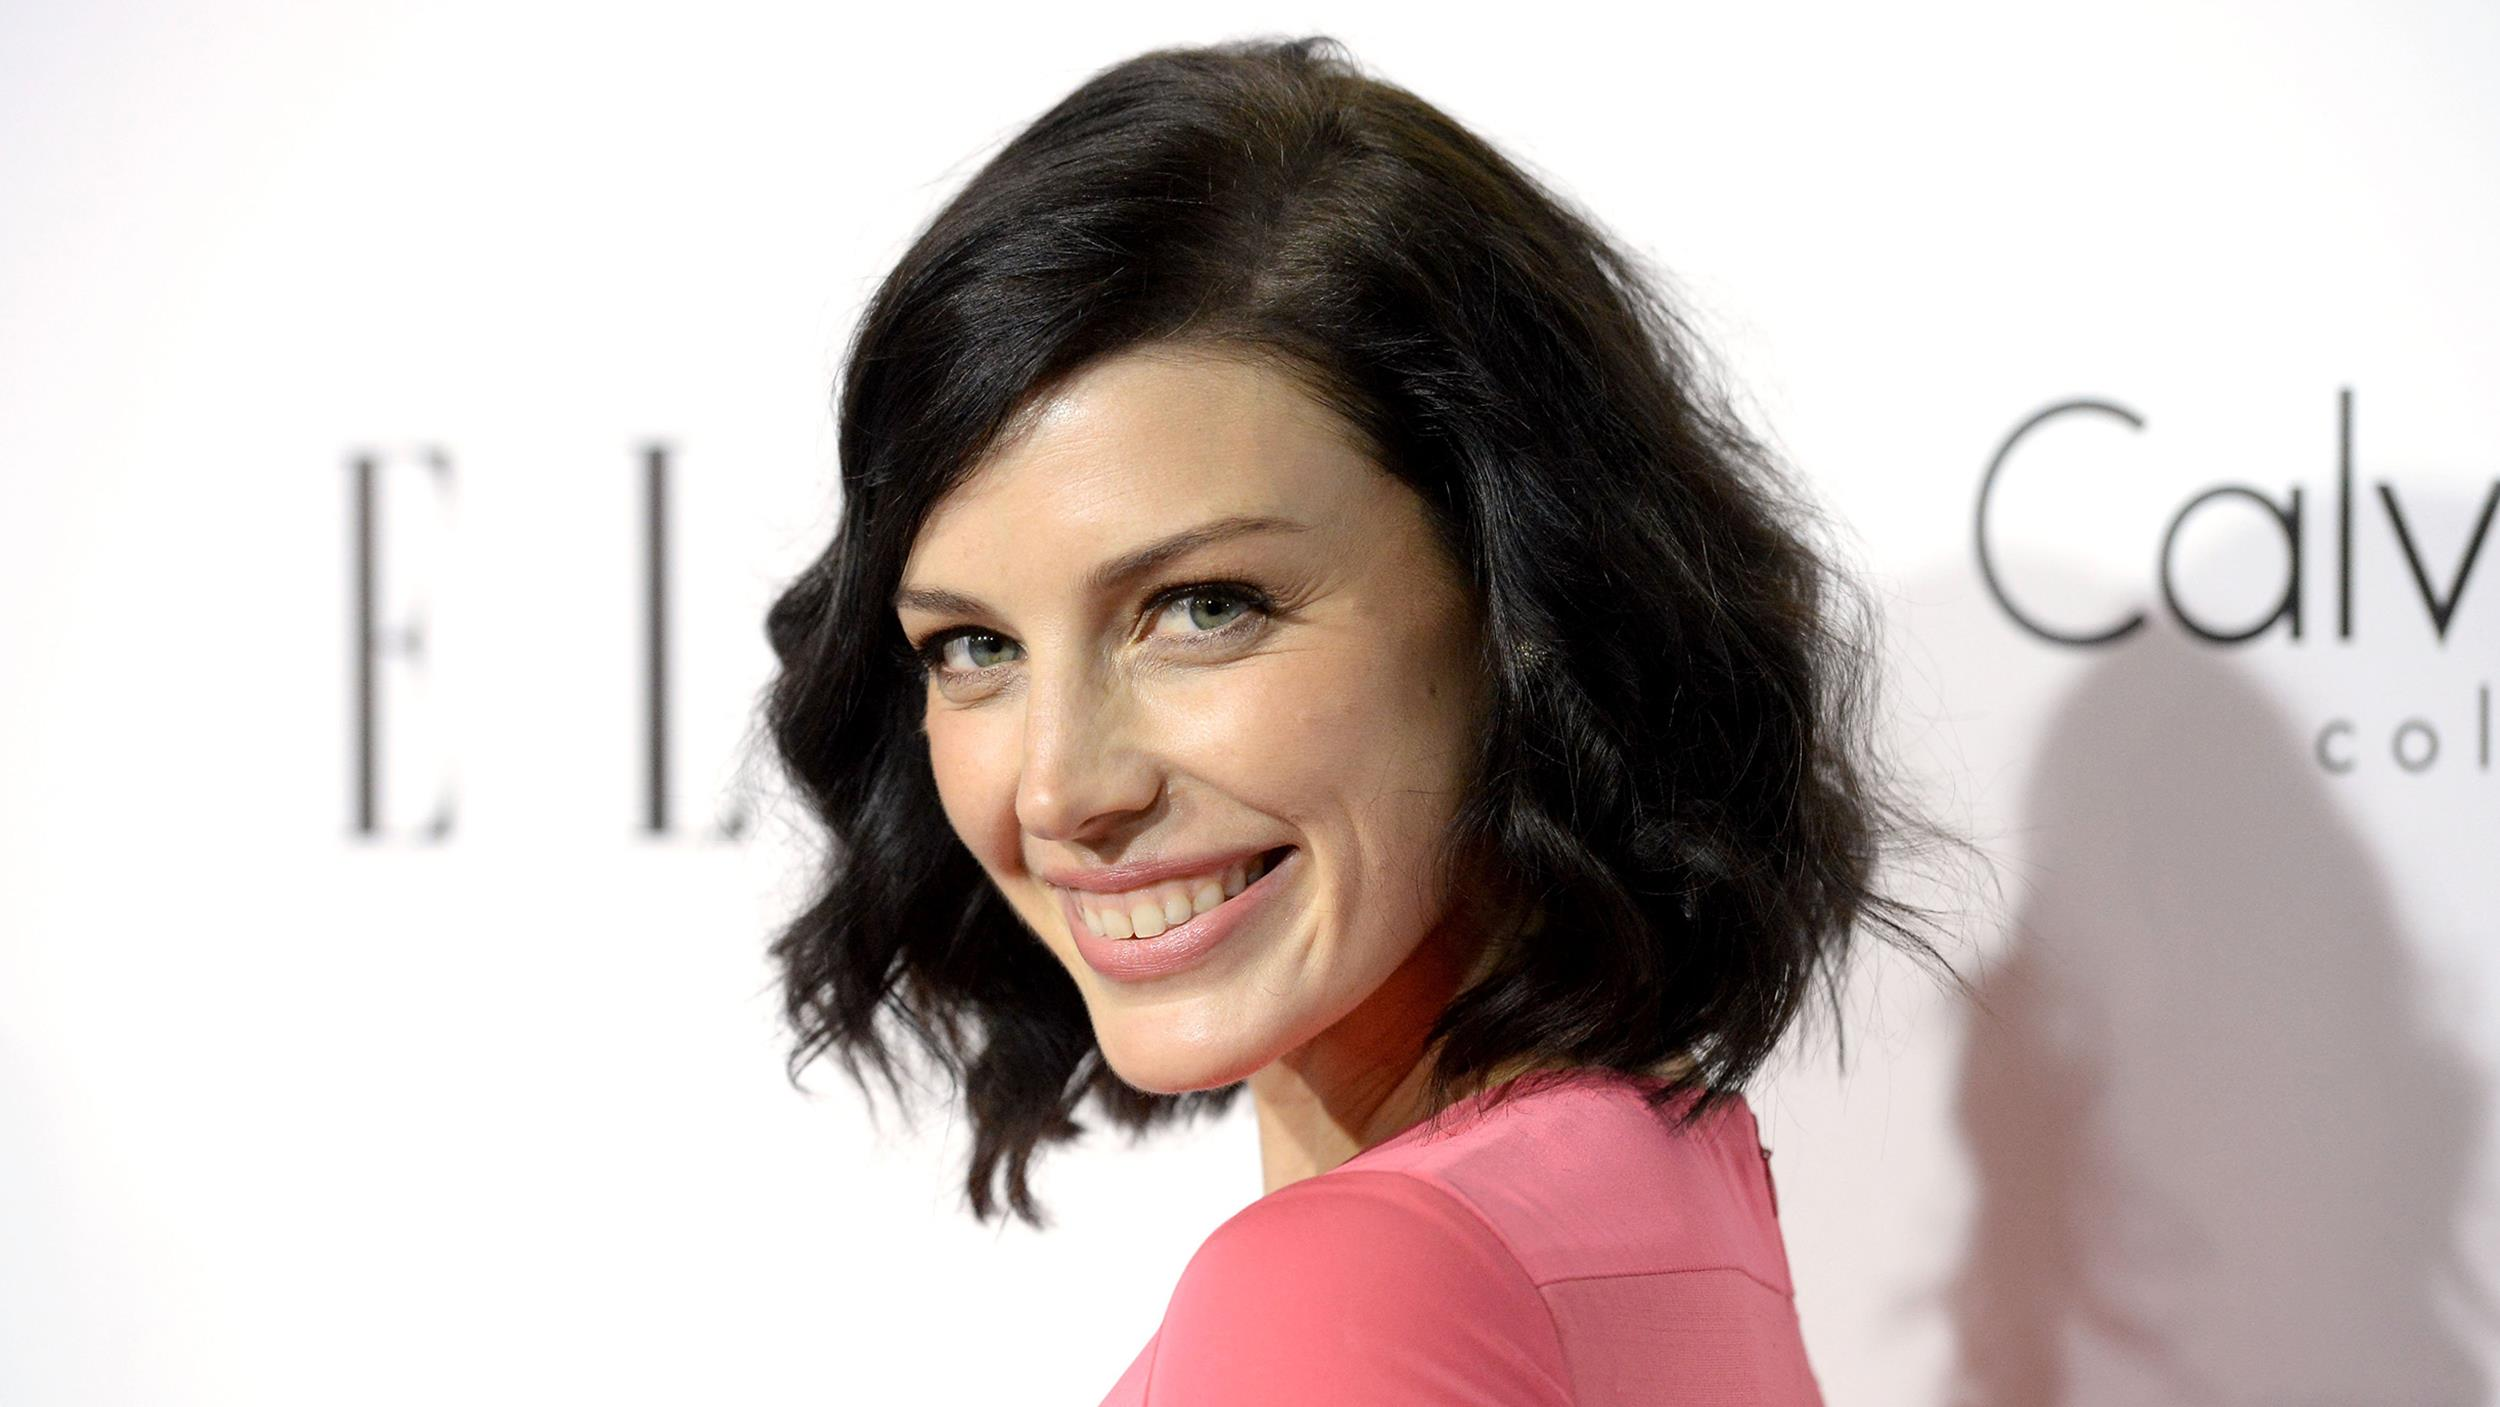 ICloud Jessica Pare nude (33 foto and video), Sexy, Paparazzi, Twitter, in bikini 2015